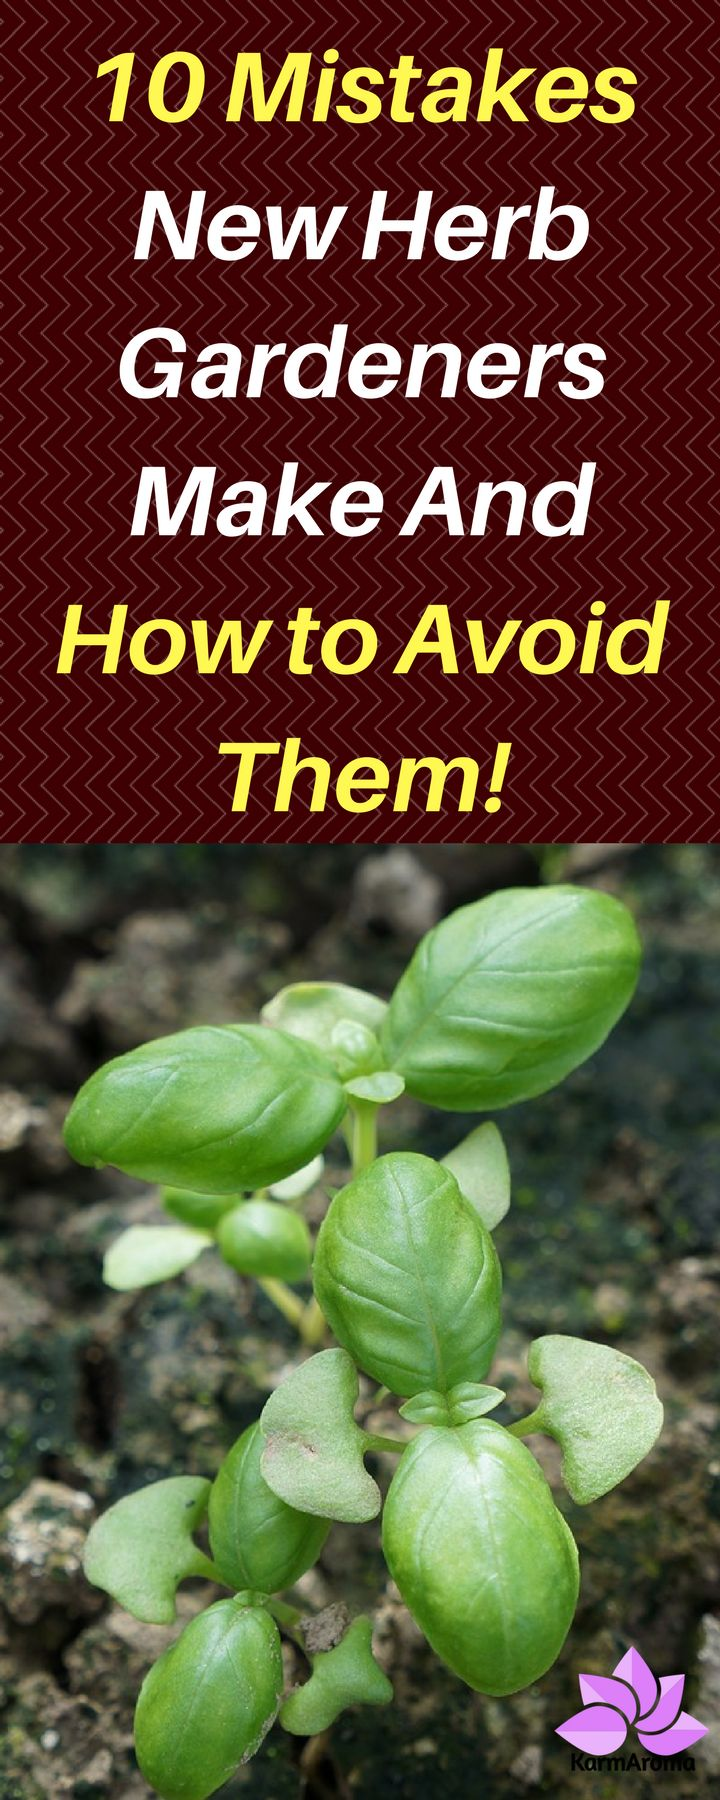 10 Mistakes New Herb Gardeners Make And How to Avoid Them!